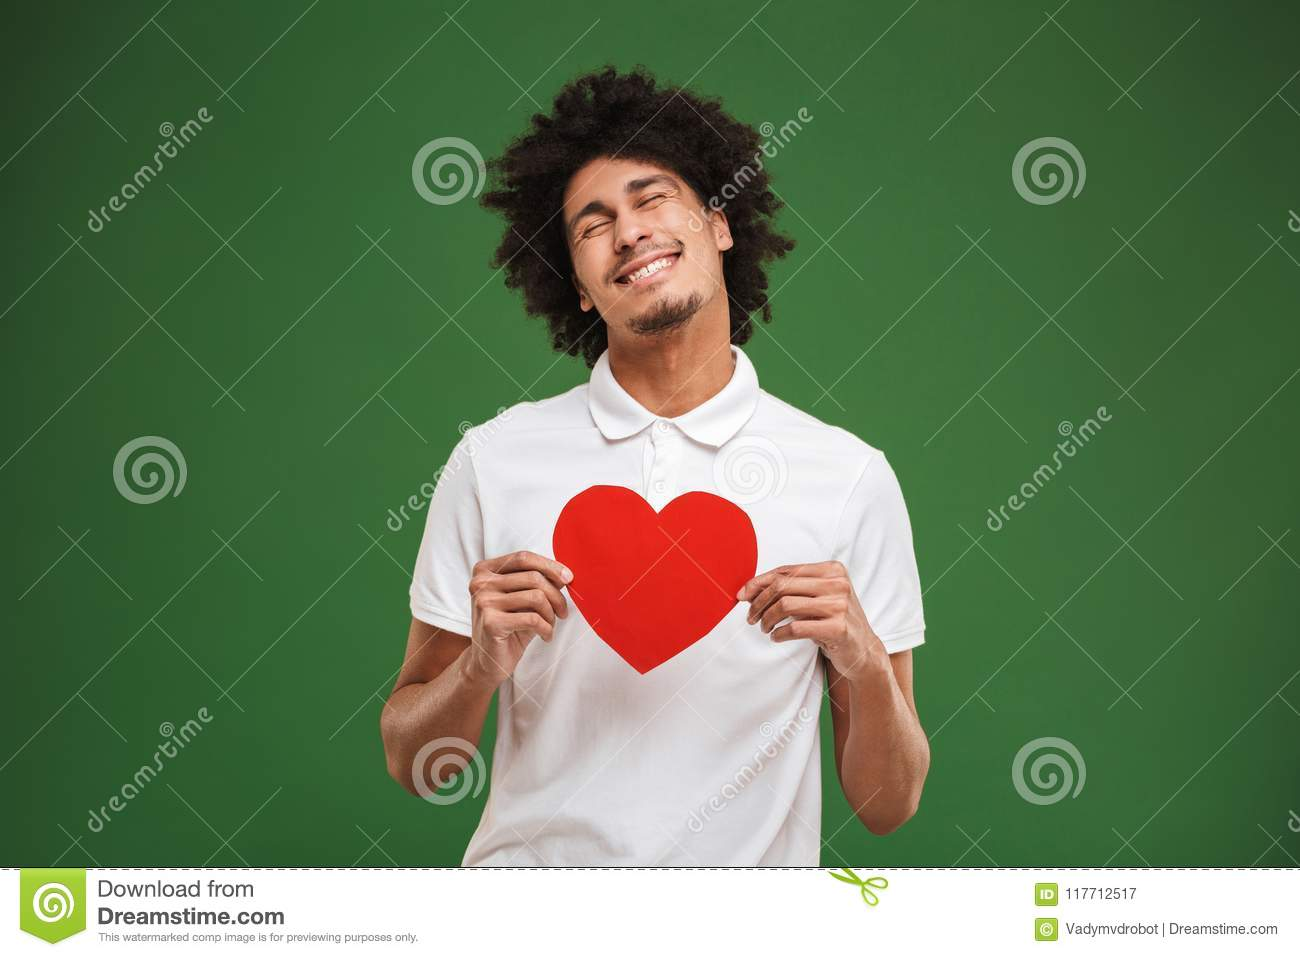 Download Cheerful Young African Curly Man Holding Heart. Stock Image - Image of portrait, confident: 117712517